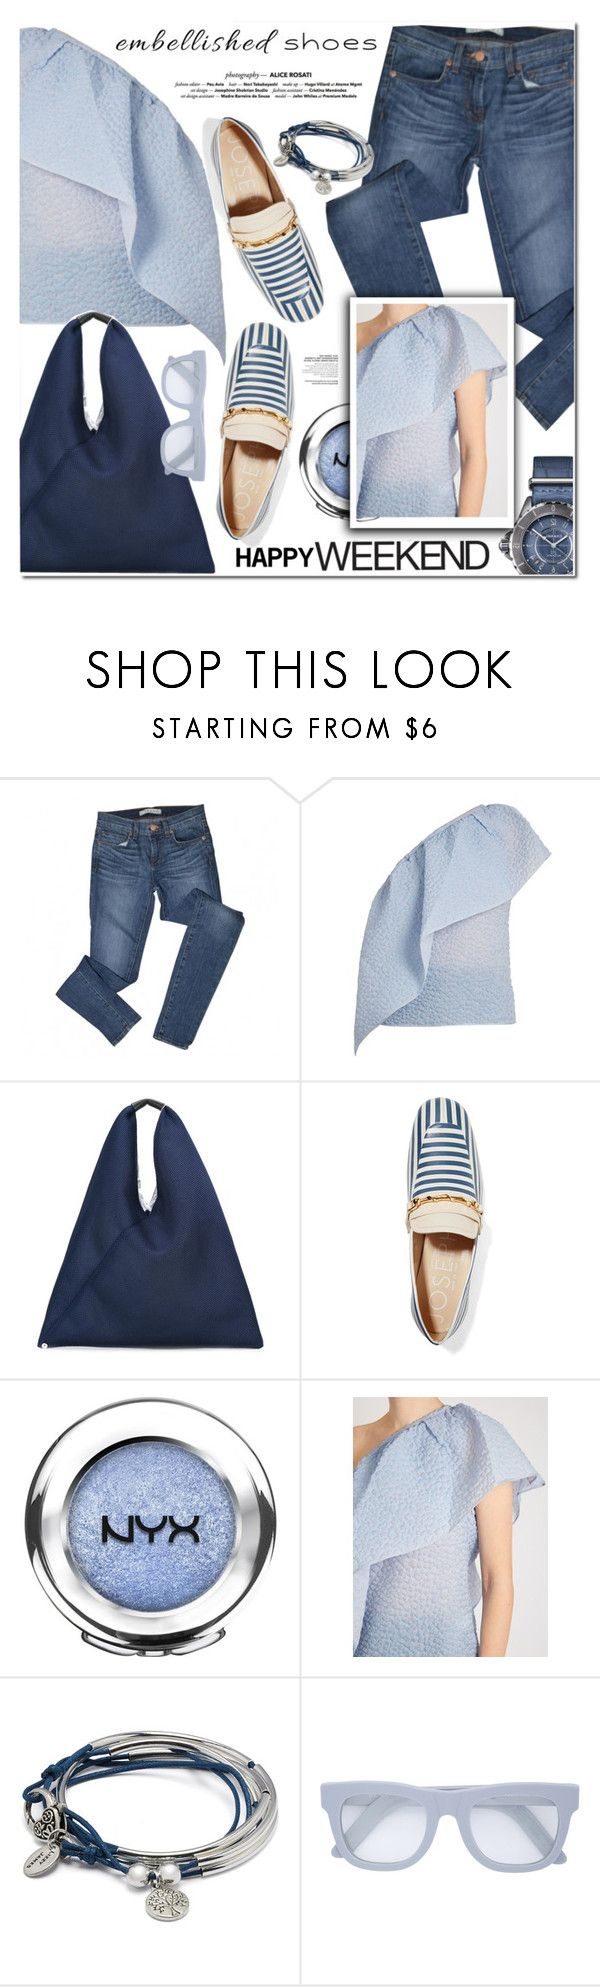 """""""HAVE A NICE WEEKEND POLY FRIENDS"""" by nanawidia ❤ liked on Polyvore featuring J Brand, Rosie Assoulin, MM6 Maison Margiela, Joseph, NYX, Chanel, Lizzy James, RetroSuperFuture, polyvoreeditorial and polyvorecontest"""